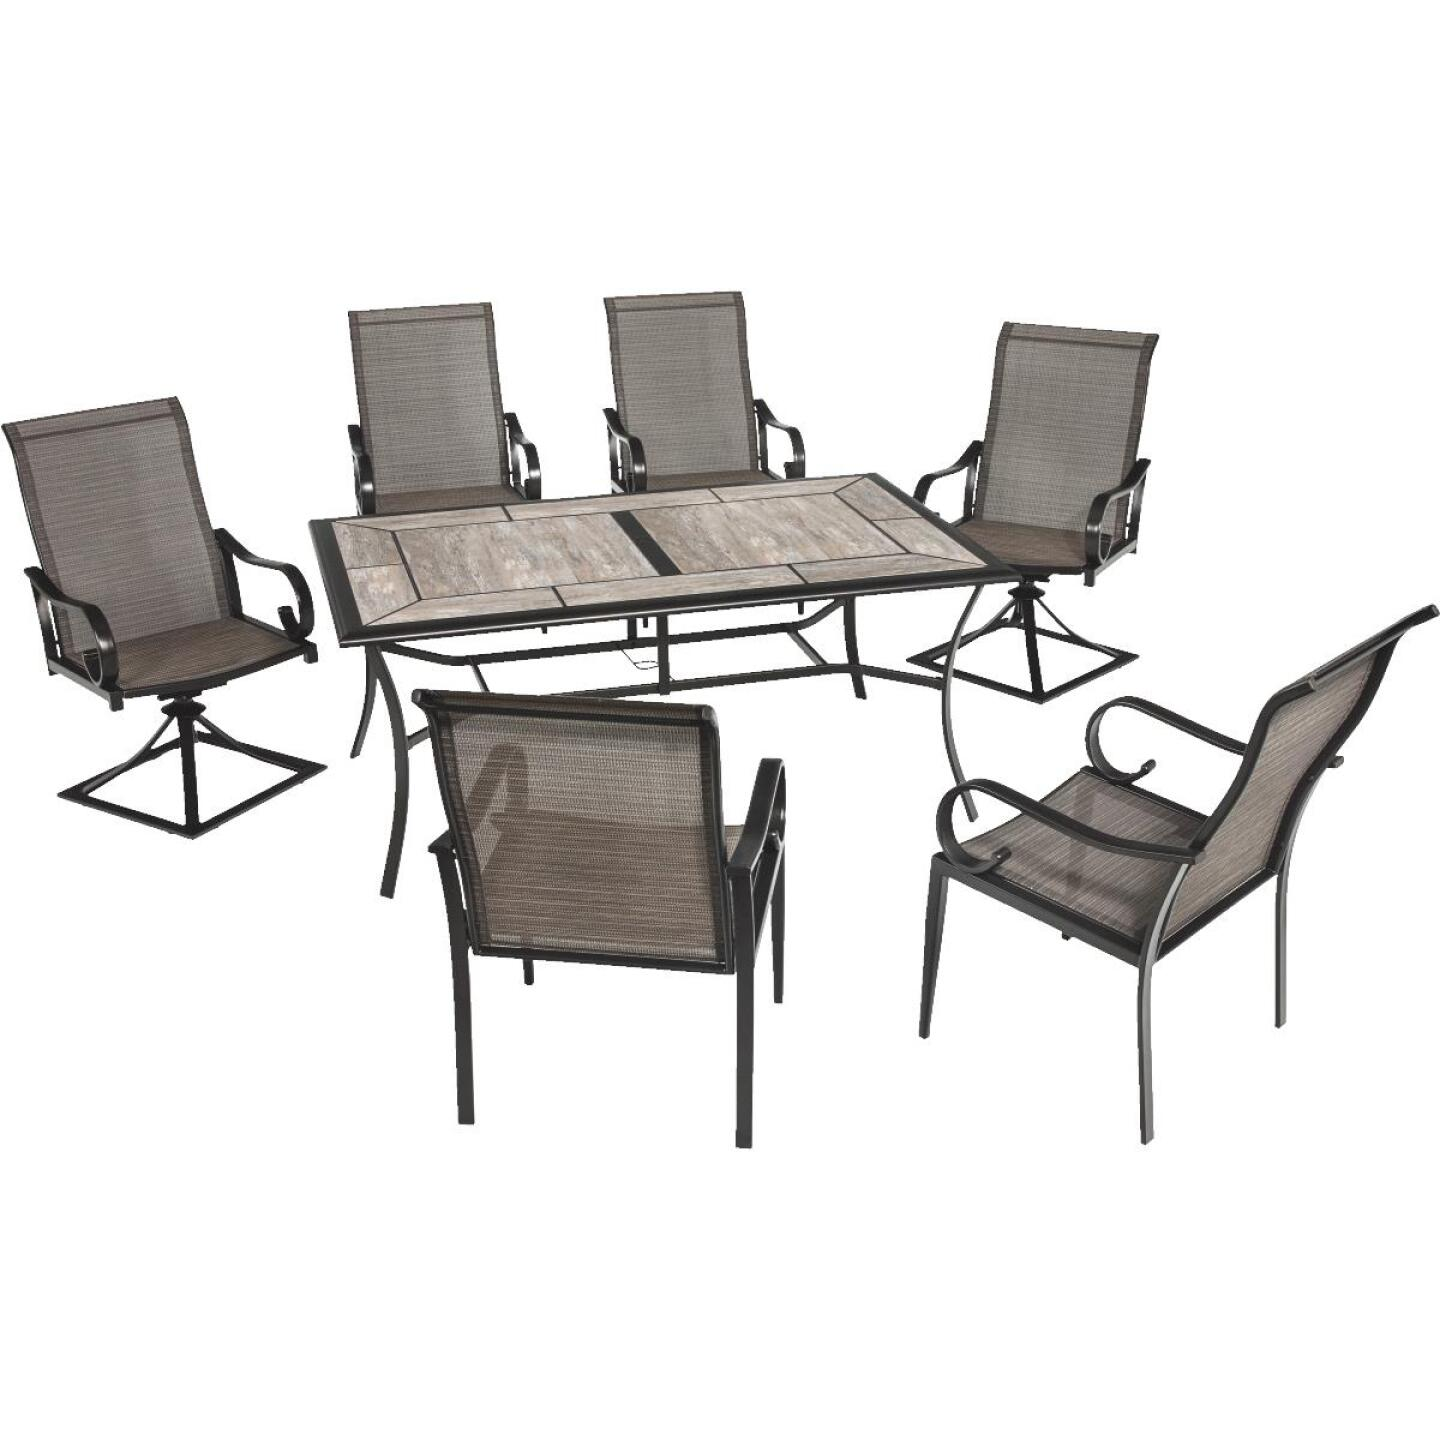 Outdoor Expressions Berkshire 7-Piece Dining Set Image 30